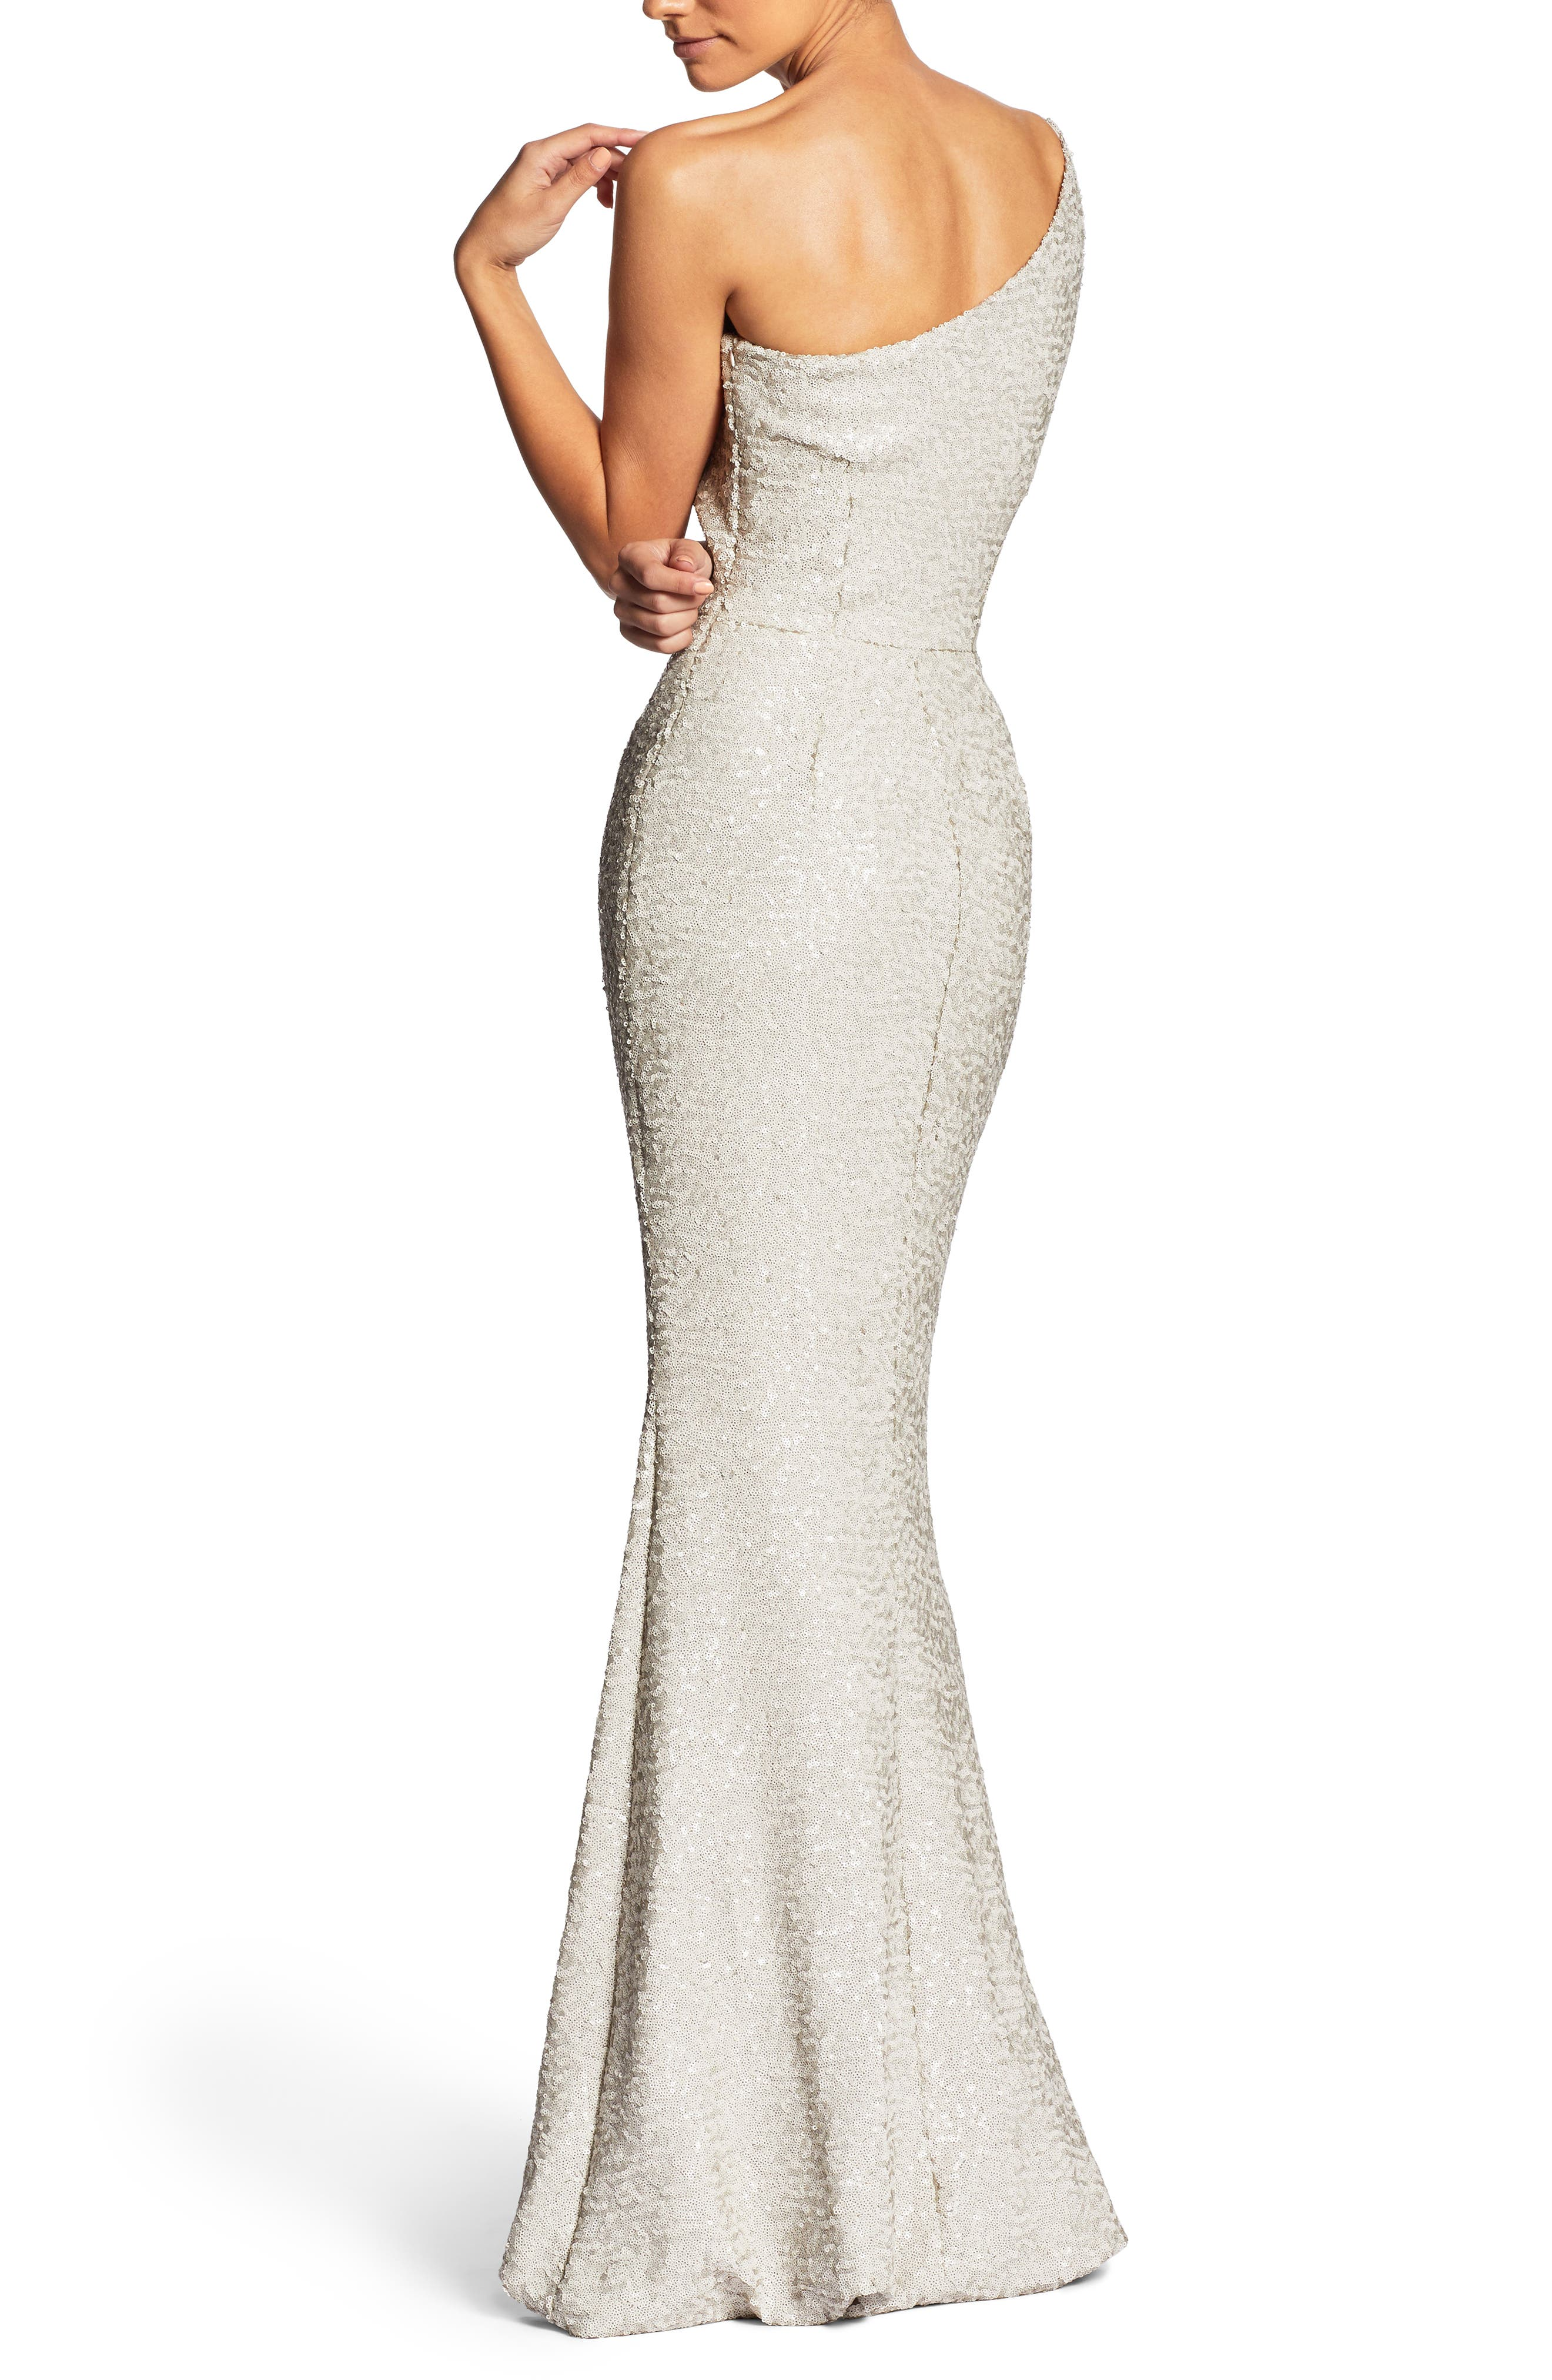 DRESS THE POPULATION, Bella One-Shoulder Mermaid Gown, Alternate thumbnail 2, color, 020